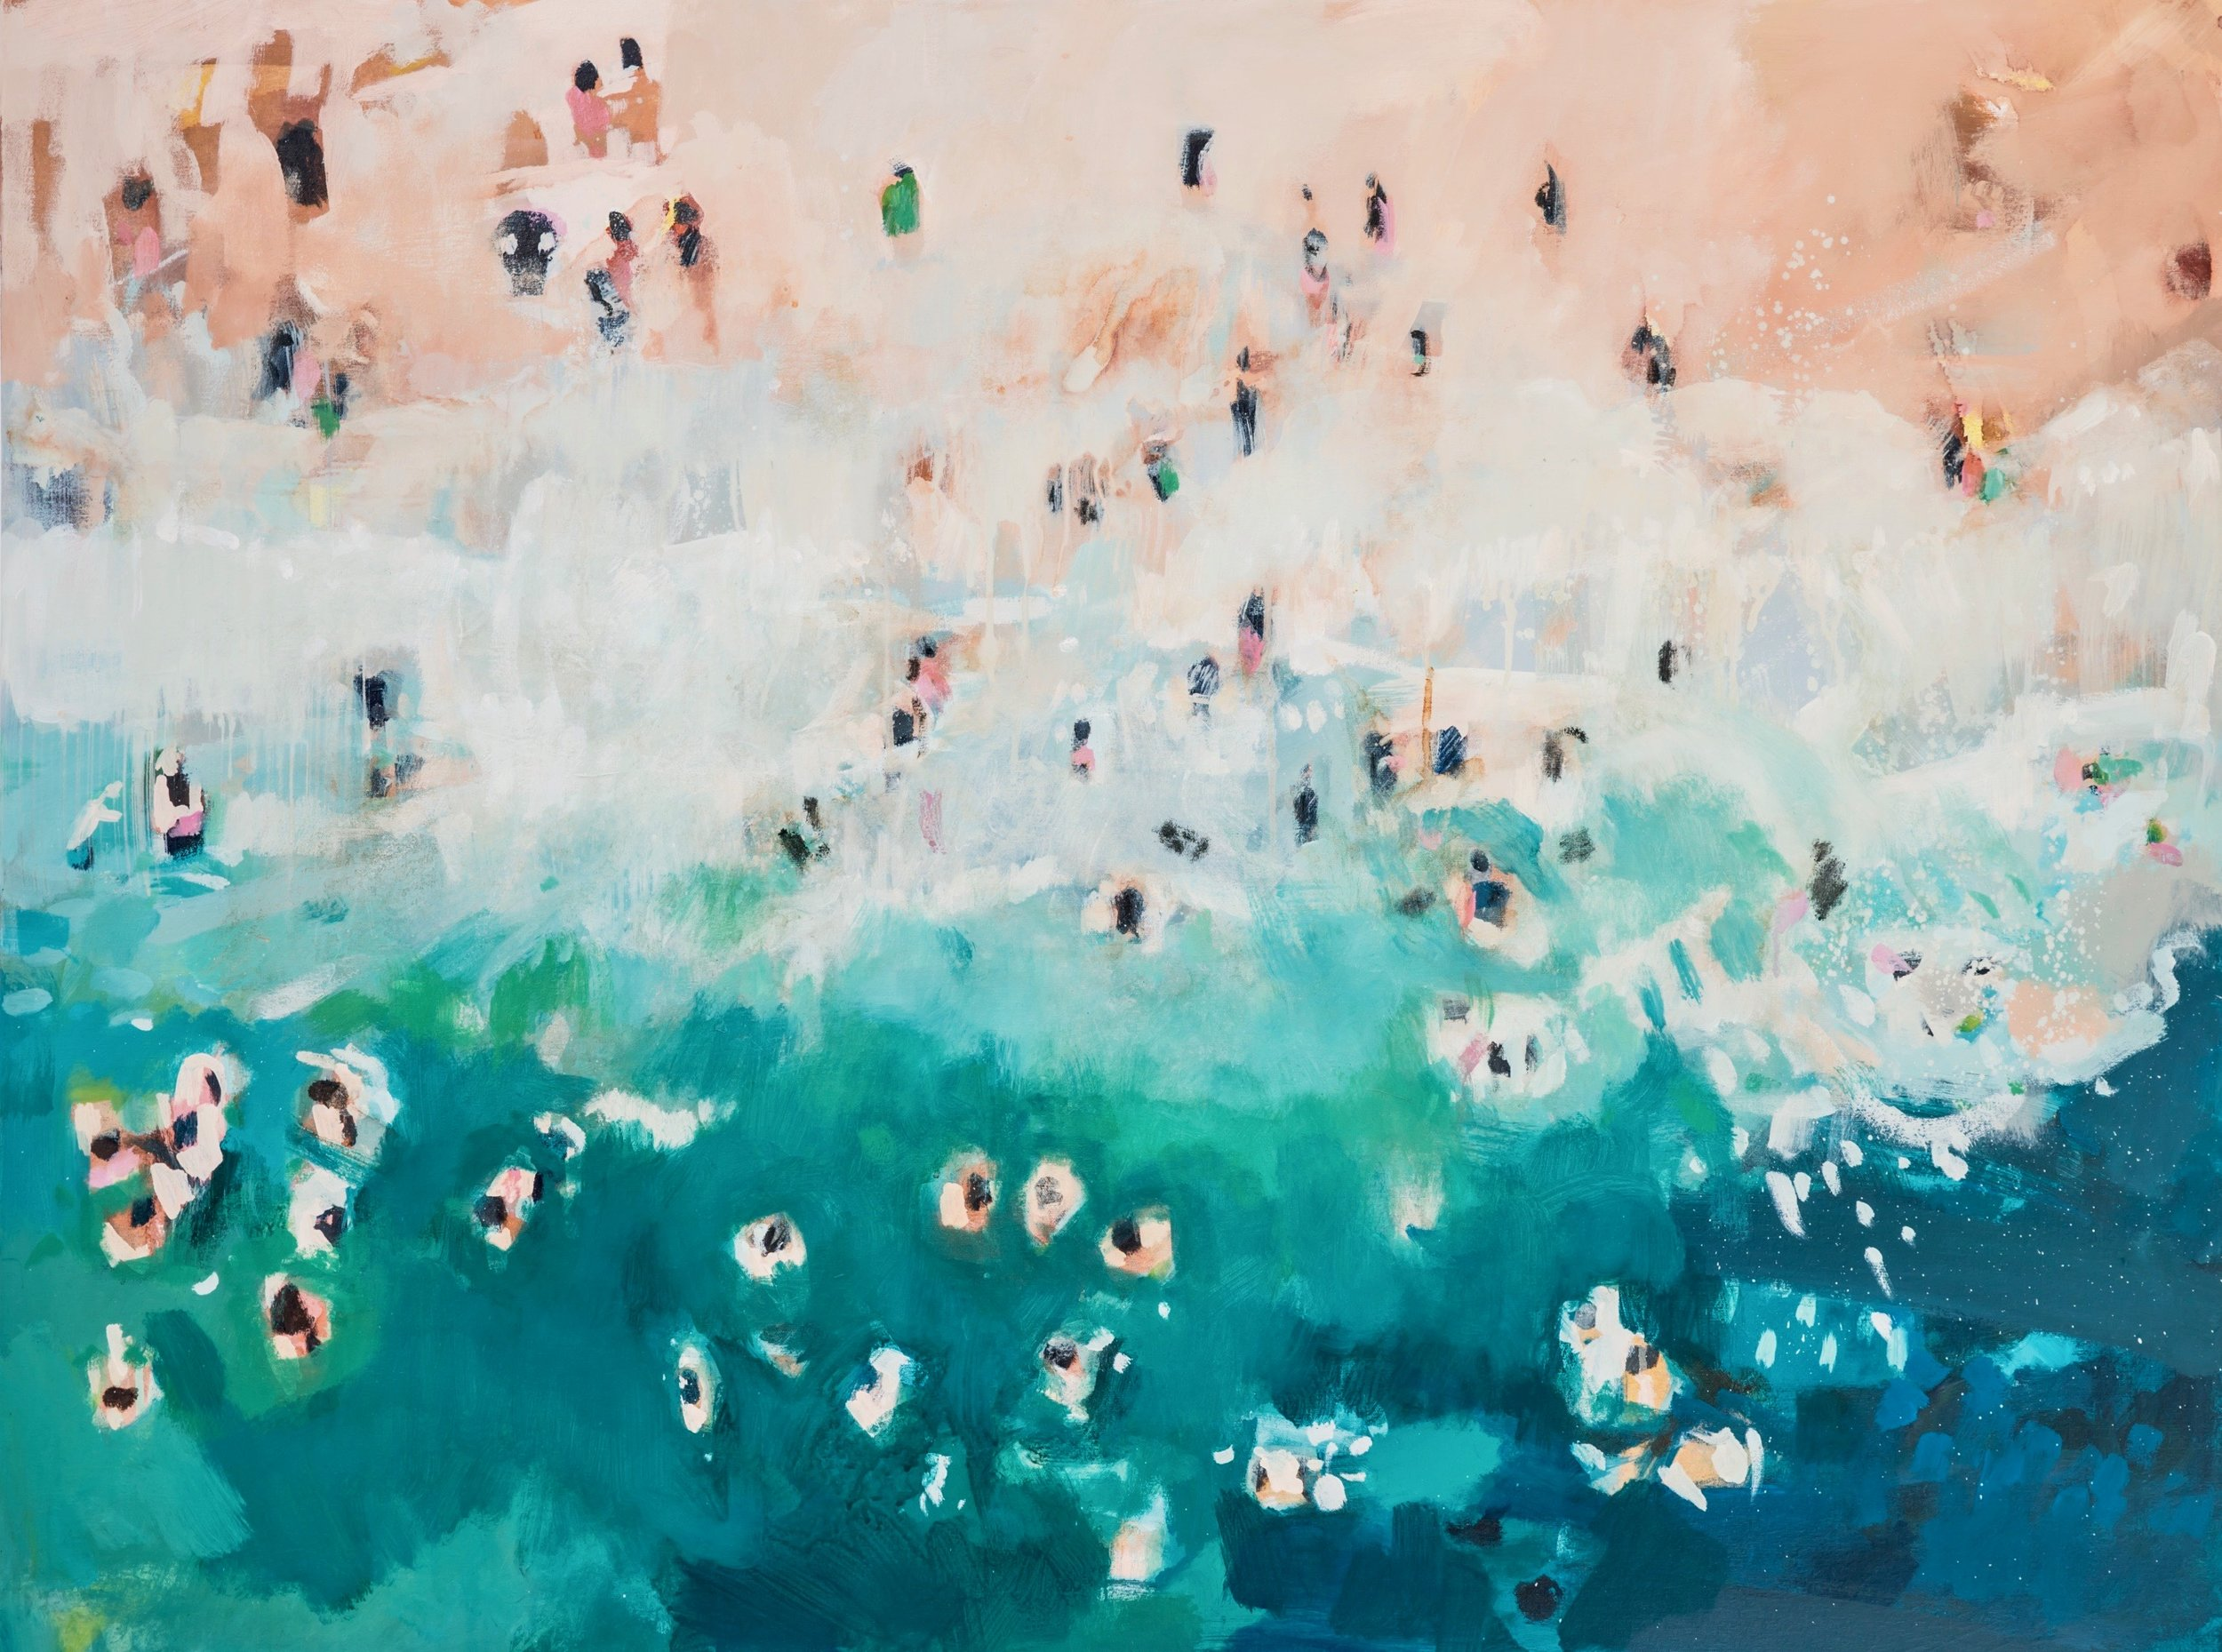 Nina Brooke | Shoreline Limited Edition Giclee Print  74.4 x 100 cm £400 89.3 x 120 cm £500  Edition of 60  Each print is accompanied by a signed certificate of authenticity